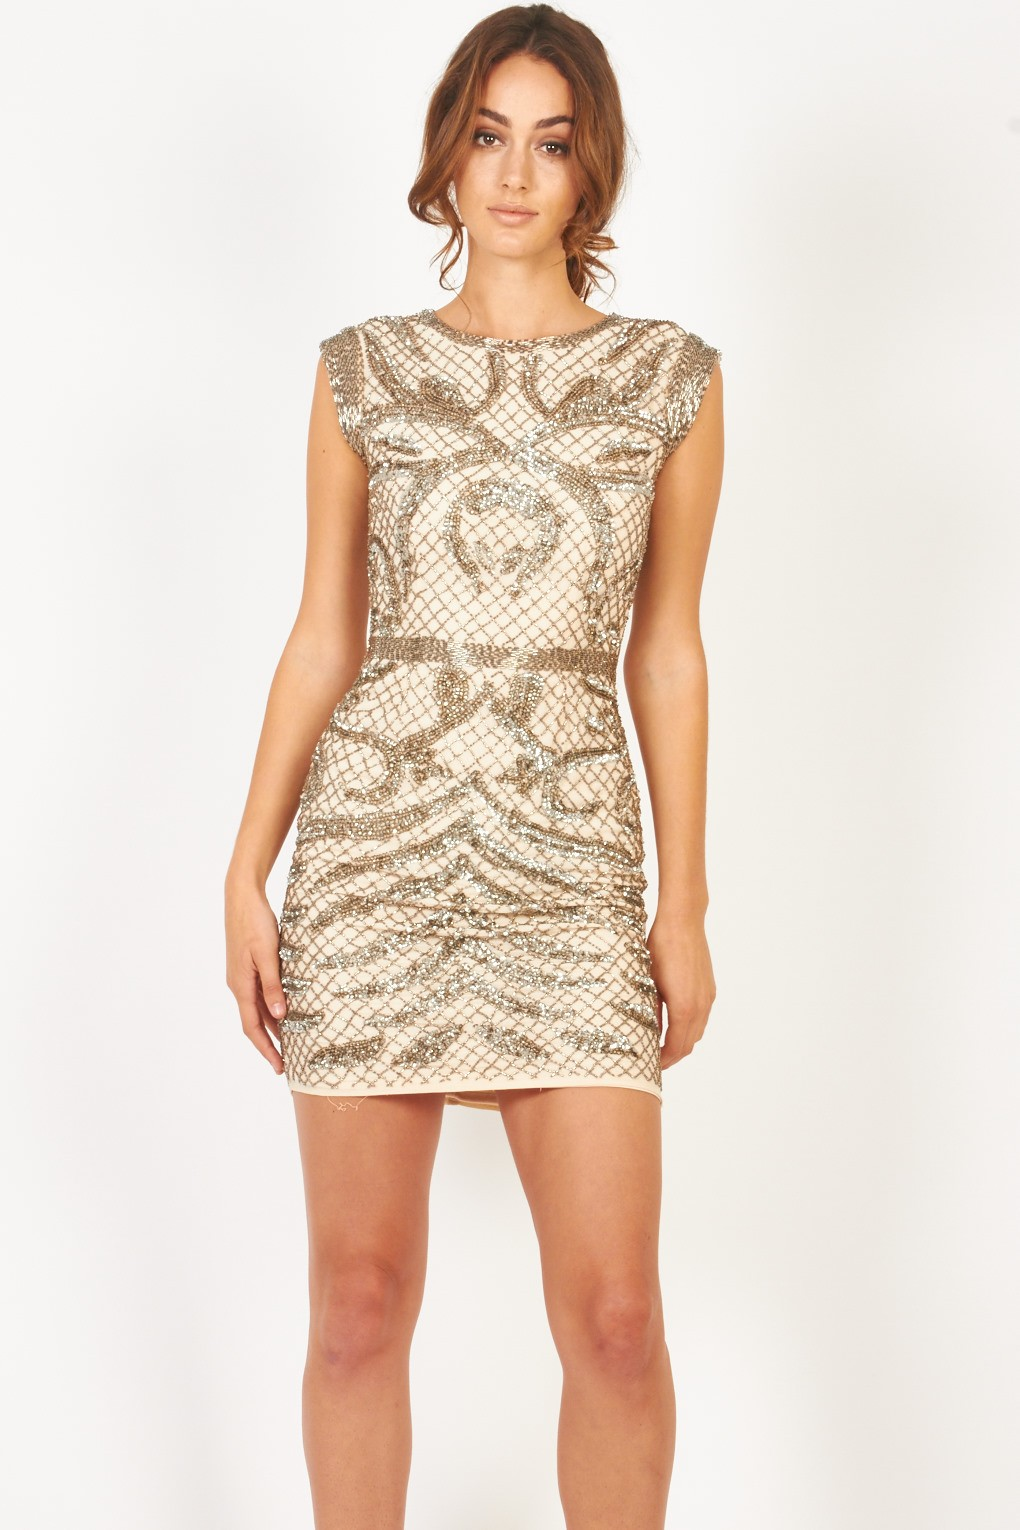 Lace Amp Beads Malta Nude Embellished Dress Party Dresses